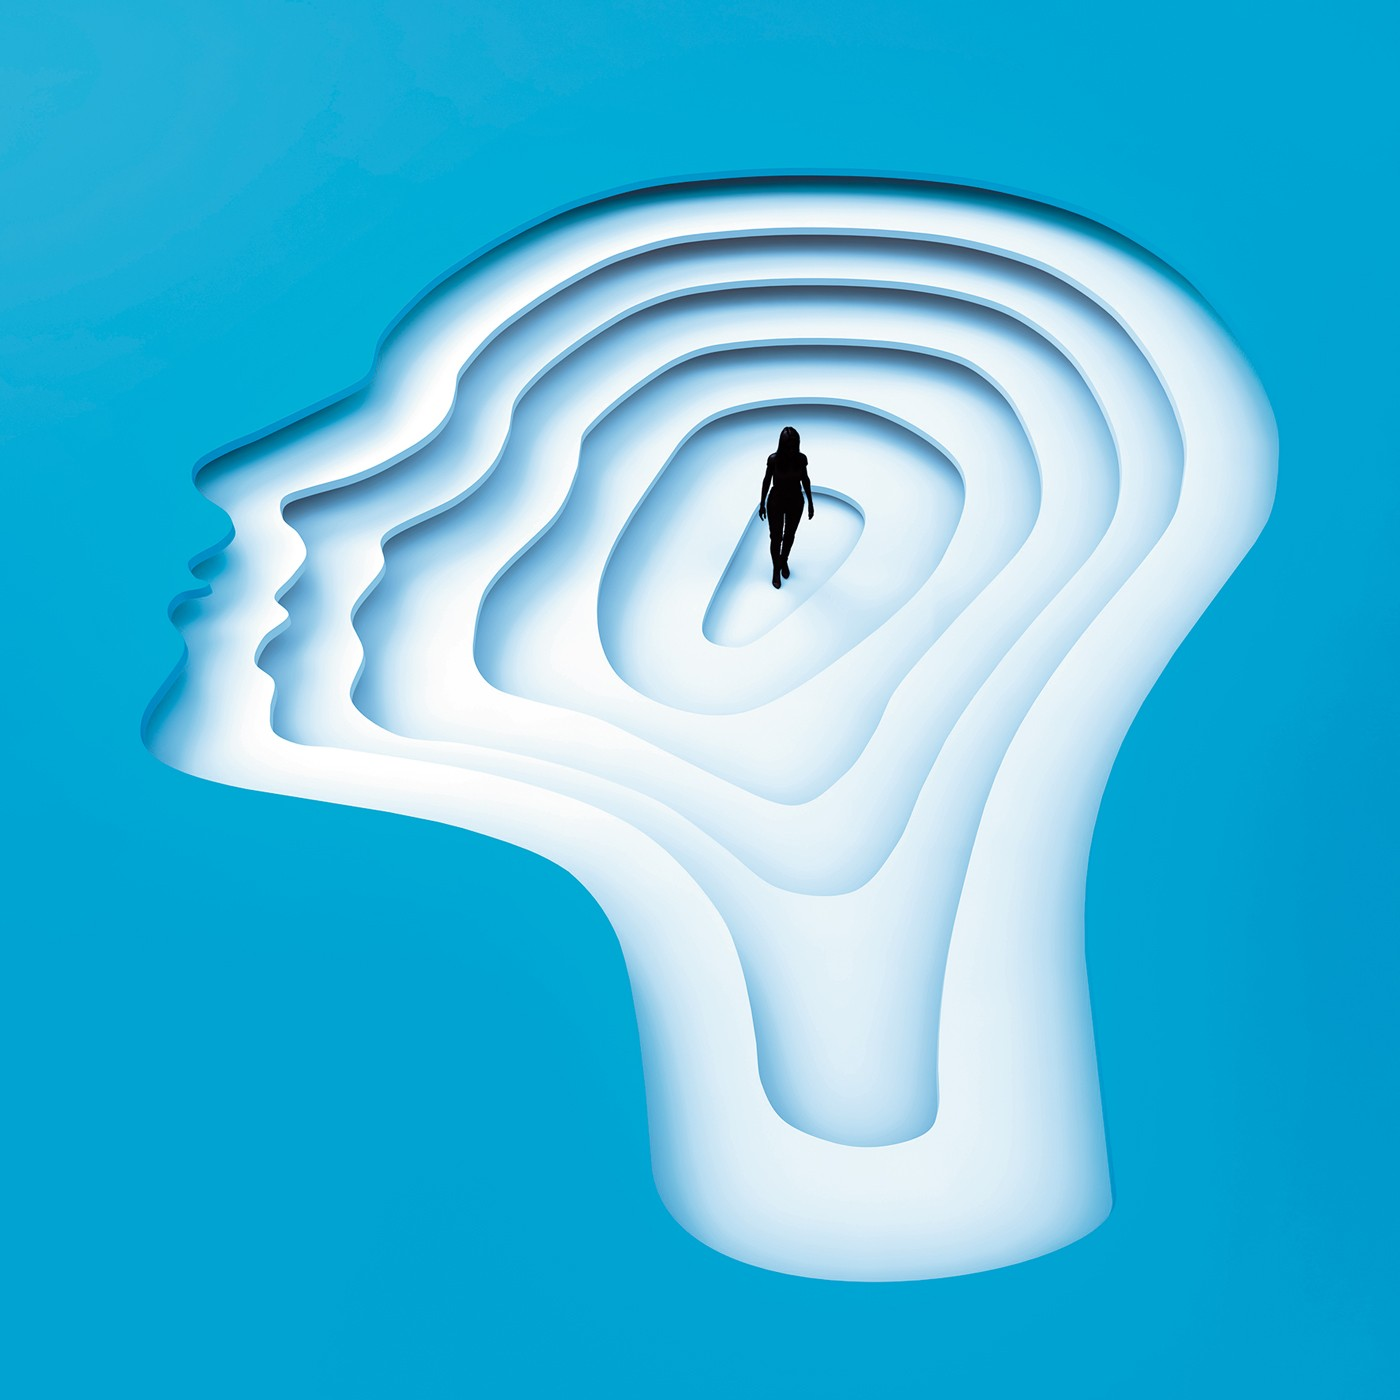 Anxiety is common and costly in T2DM — why psychology matters